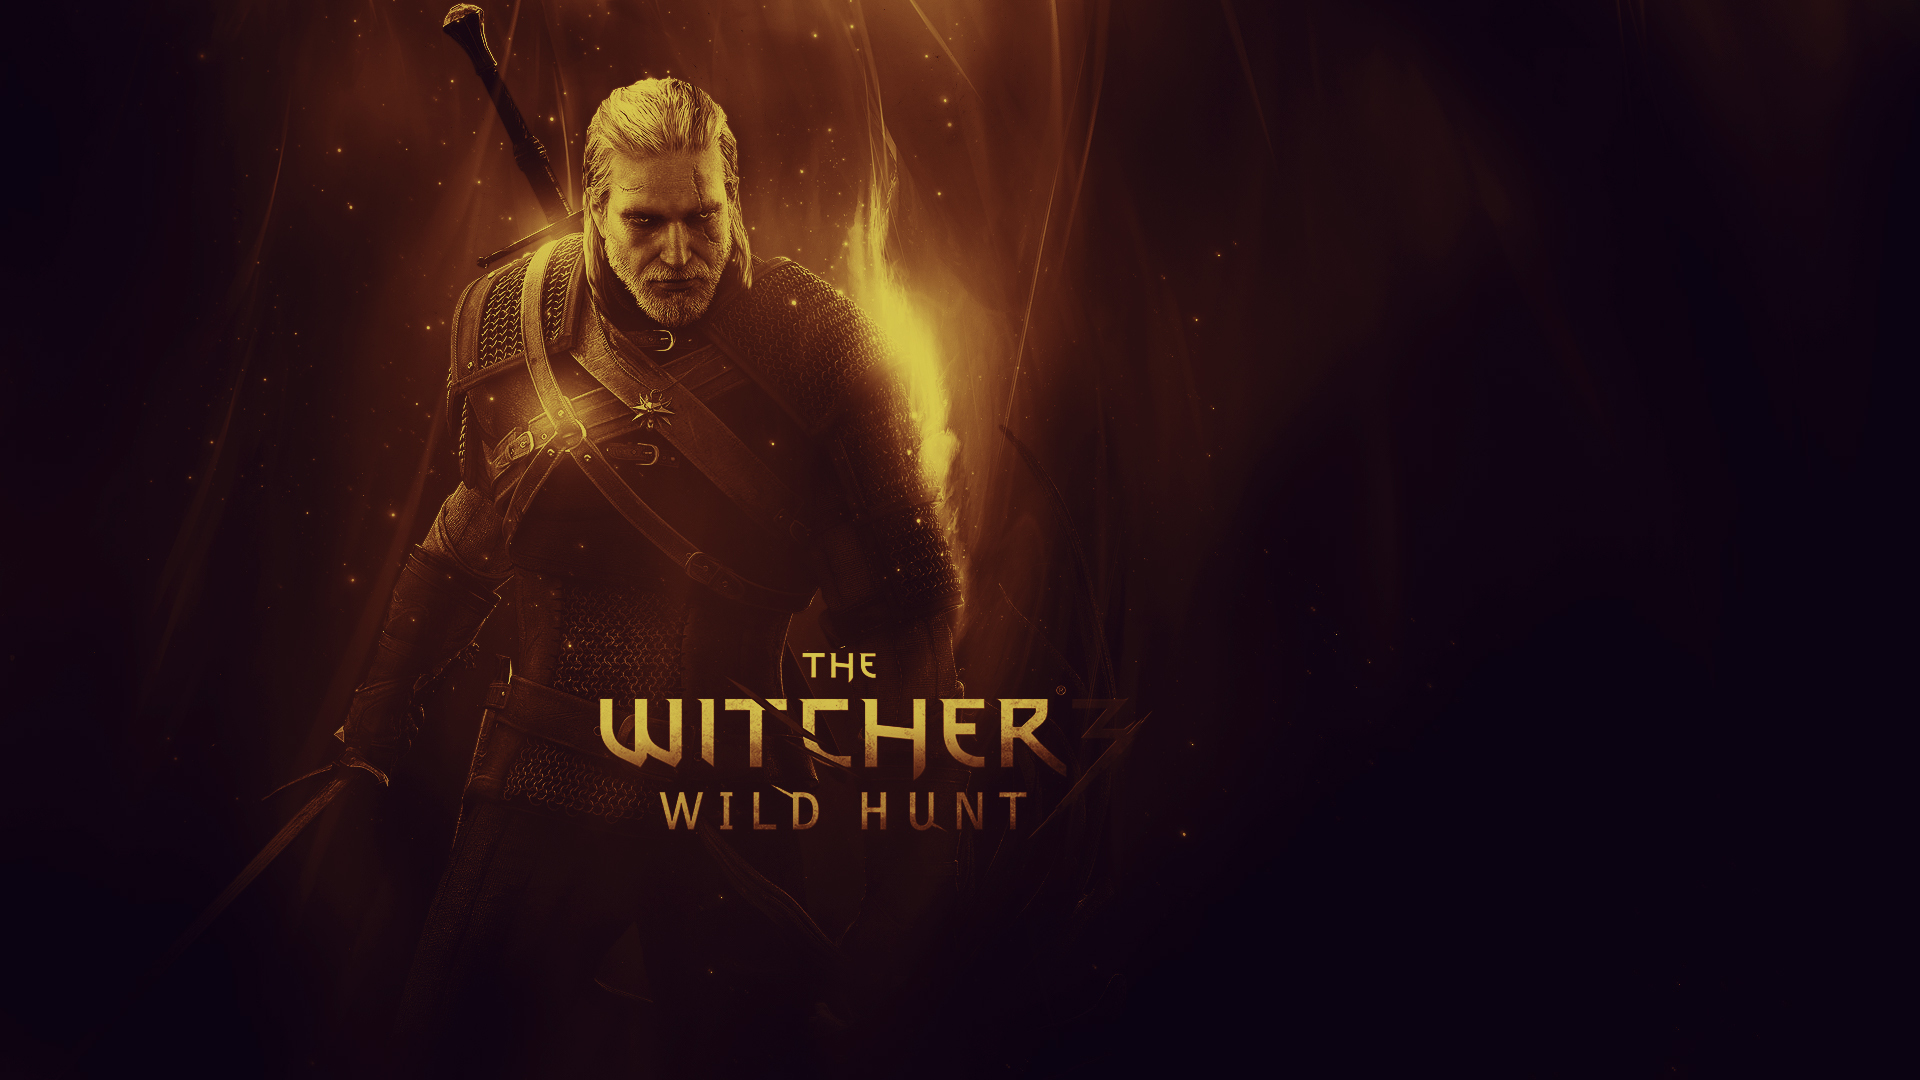 Free Download Wallpaper The Witcher 3 Wild Hunt Geralt Of Rivia